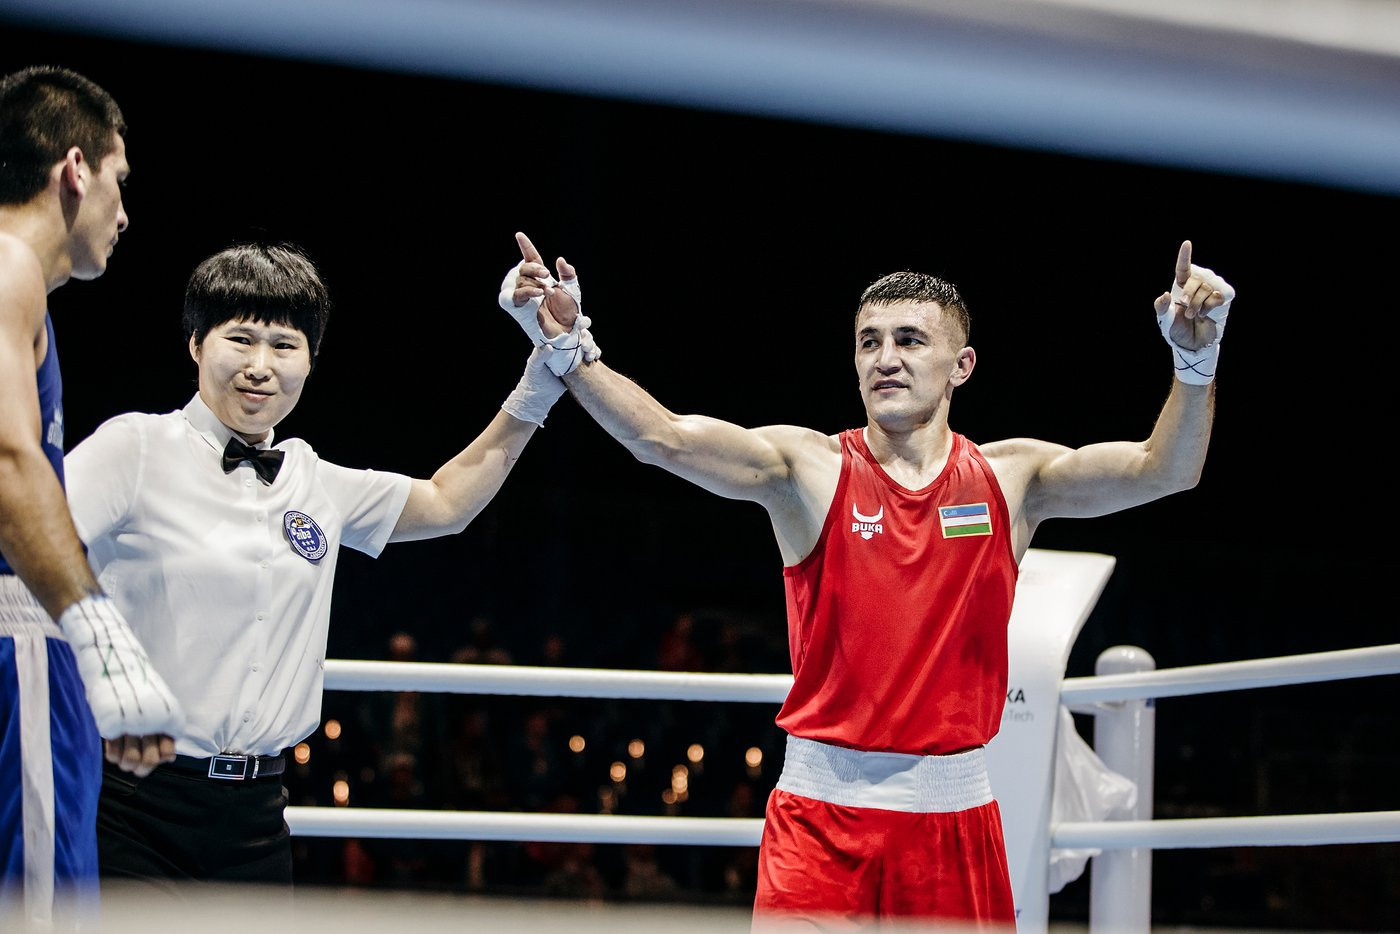 Bobo-Usmon Baturov of Uzbekistan got past Brian Arregui of Argentina ©Yekaterinburg 2019